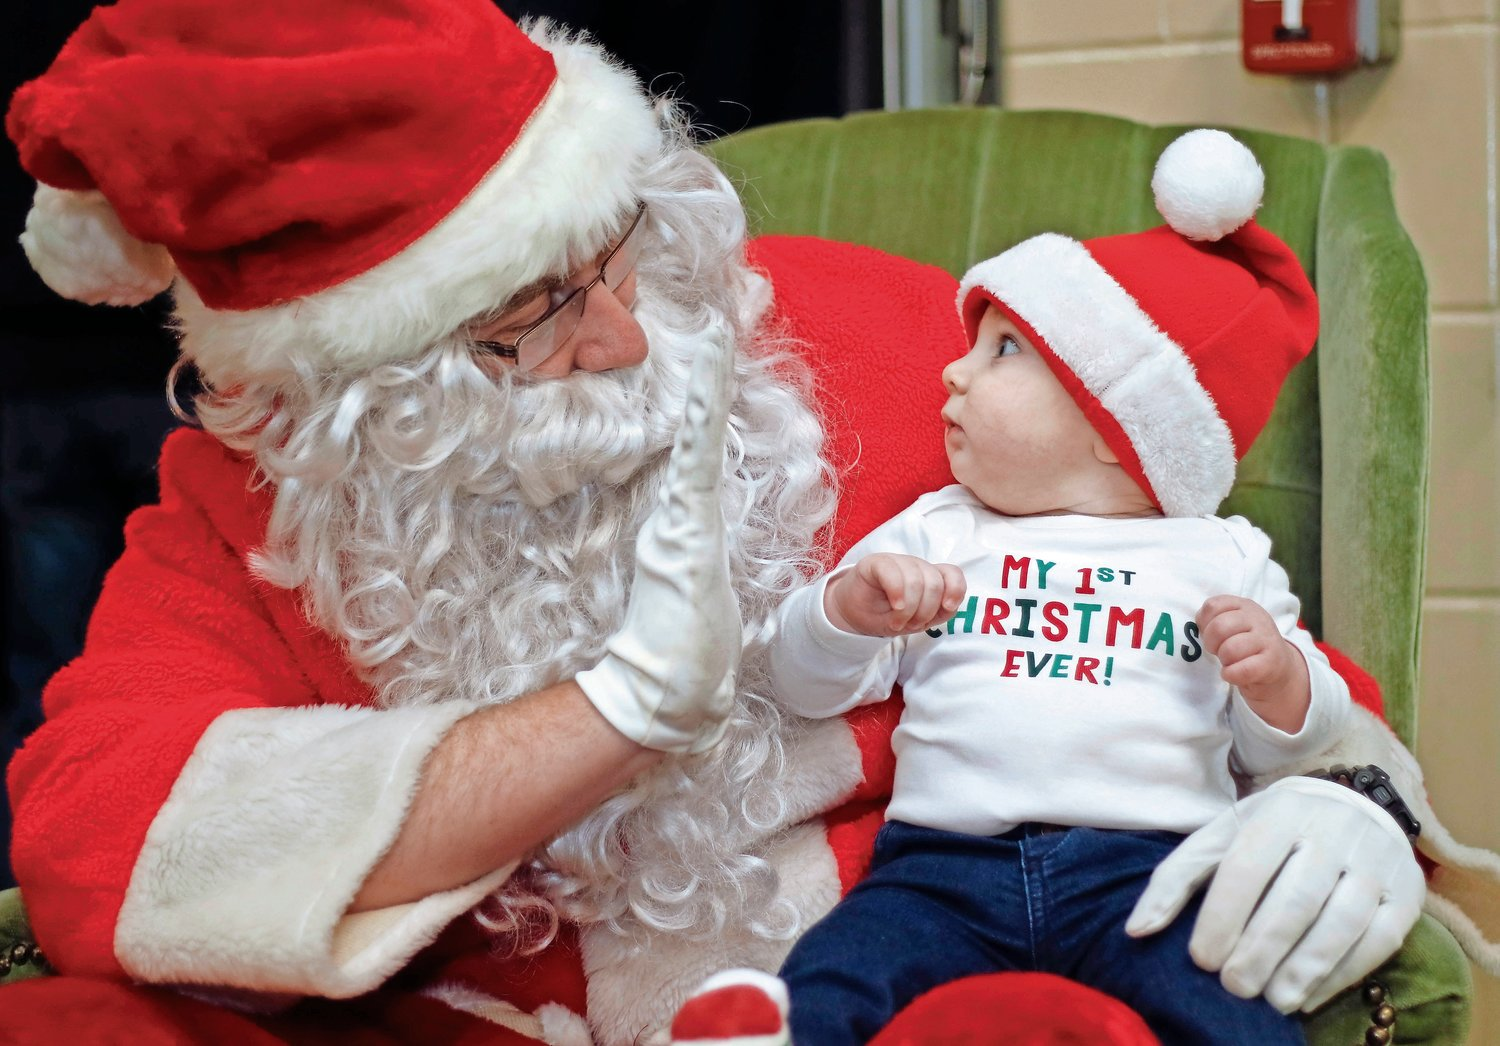 At 6-months-old, Anthony Mollish met Santa for the first time at the Franklin Square & Munson Fire Department's Christmas tree lighting on Dec. 6.